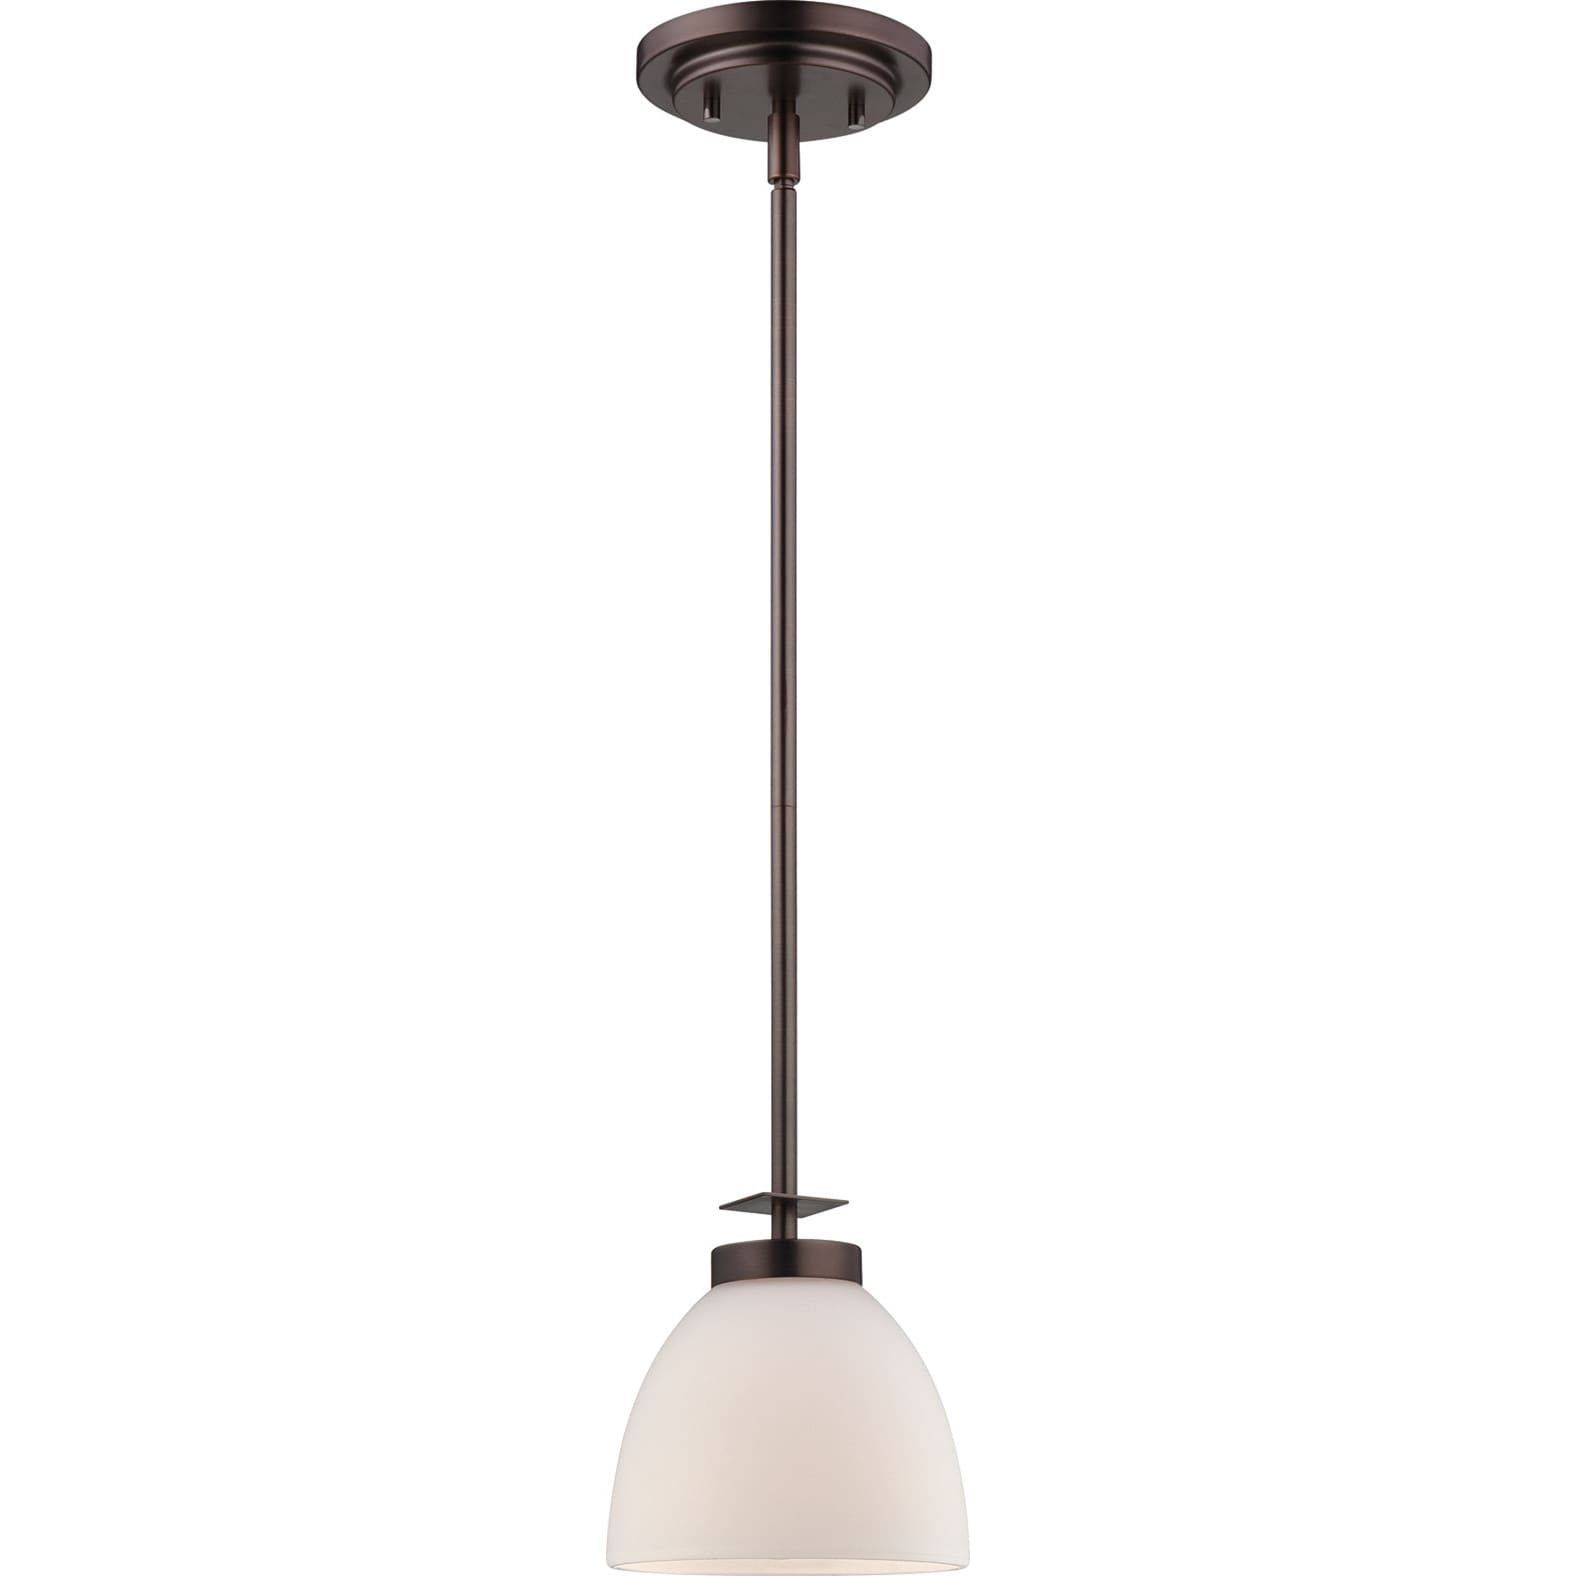 Nuvo Bentley 1-light Hazel Bronze Mini Pendant